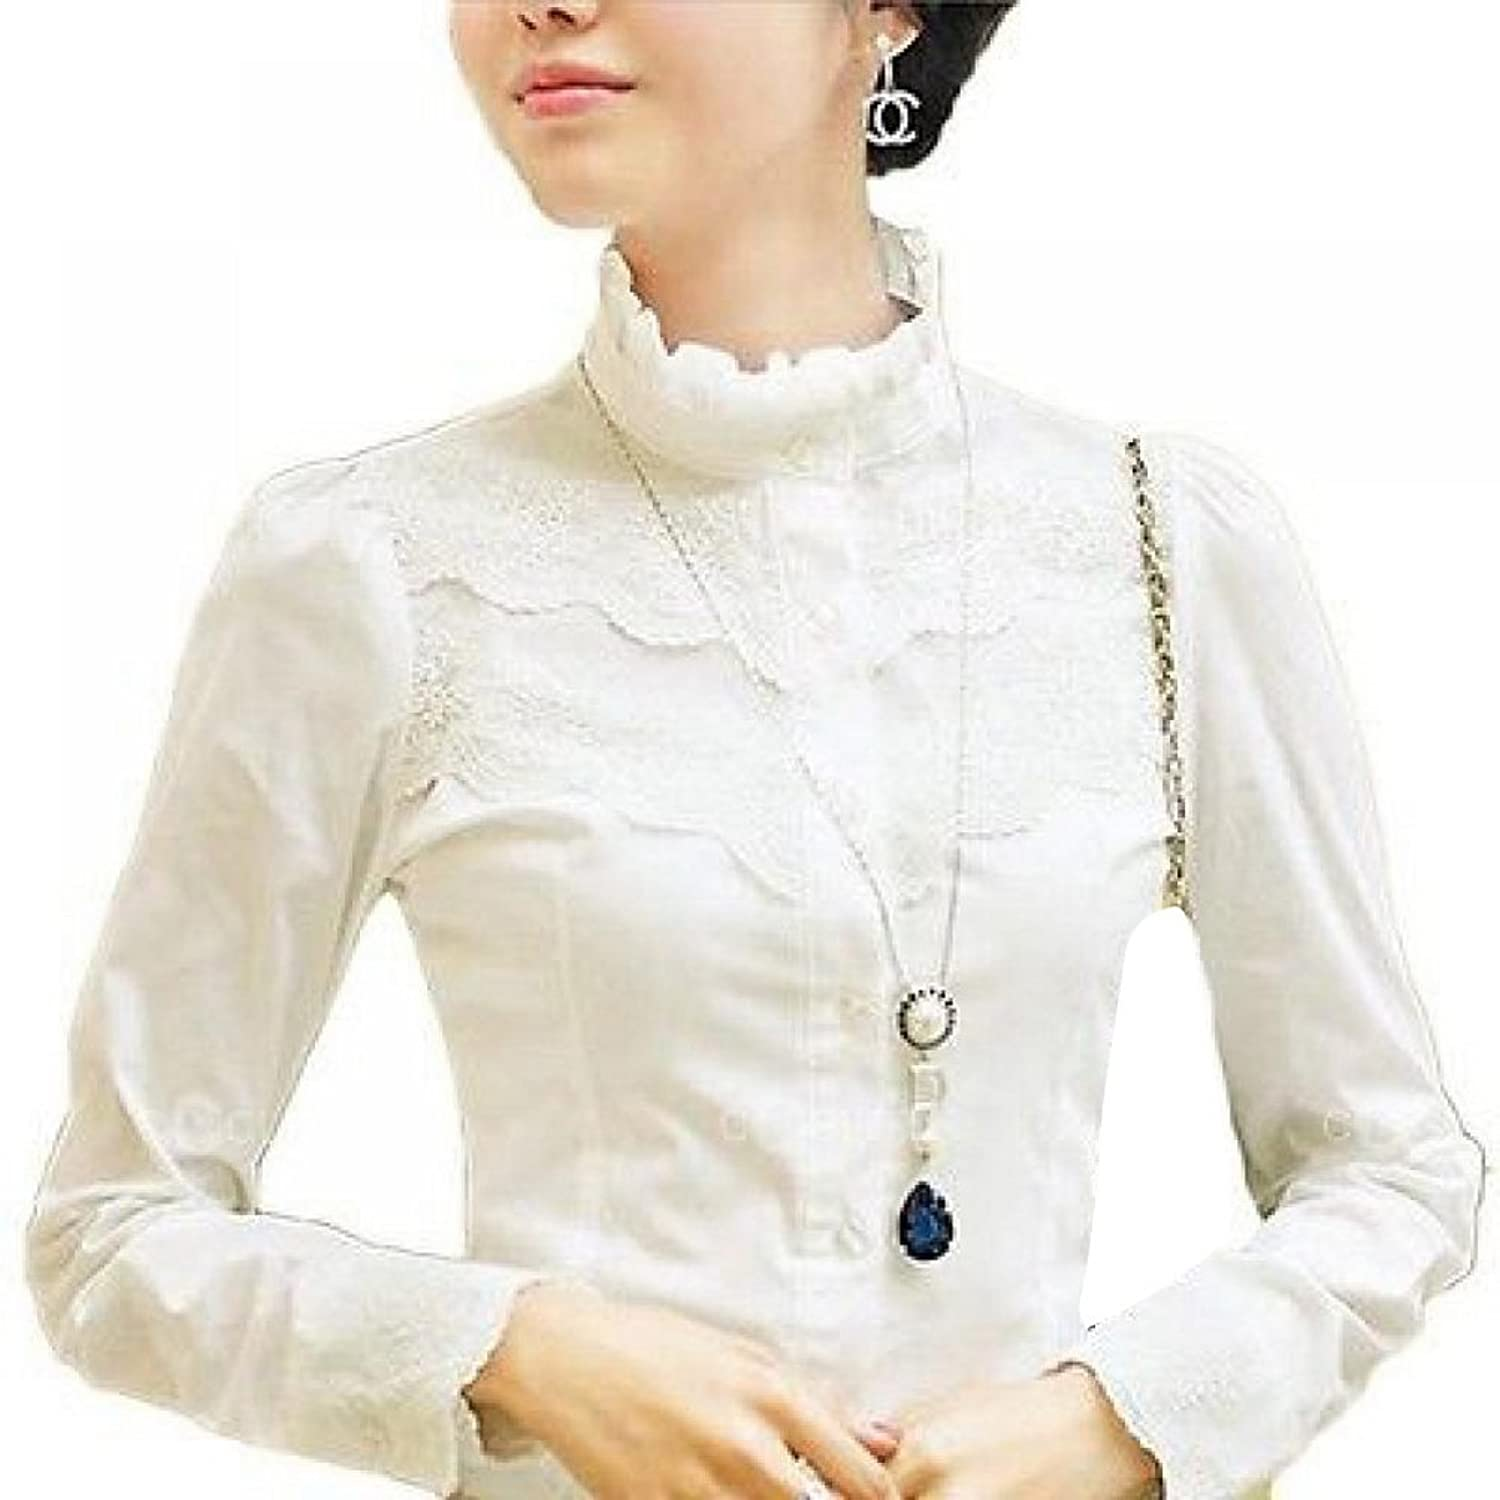 Victorian Fitted Casual Sheer Chiffon Lace Blouse Shirt Top $15.90 AT vintagedancer.com